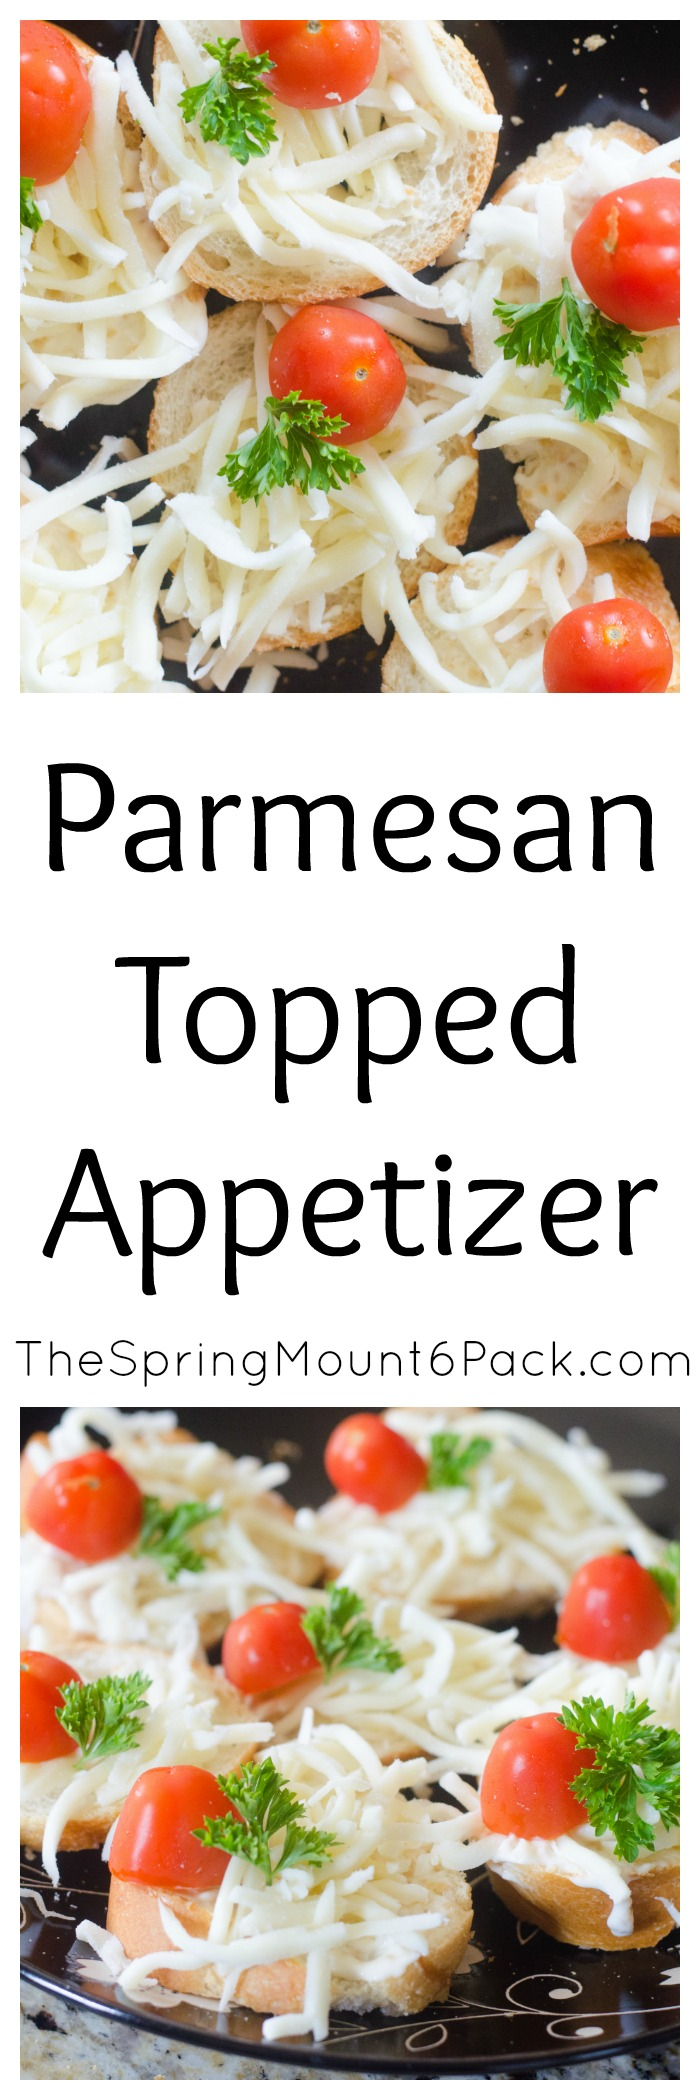 Need a simple appetizer for your next get together? This Parmesan topped appetizer is too good not to serve your friends and family.